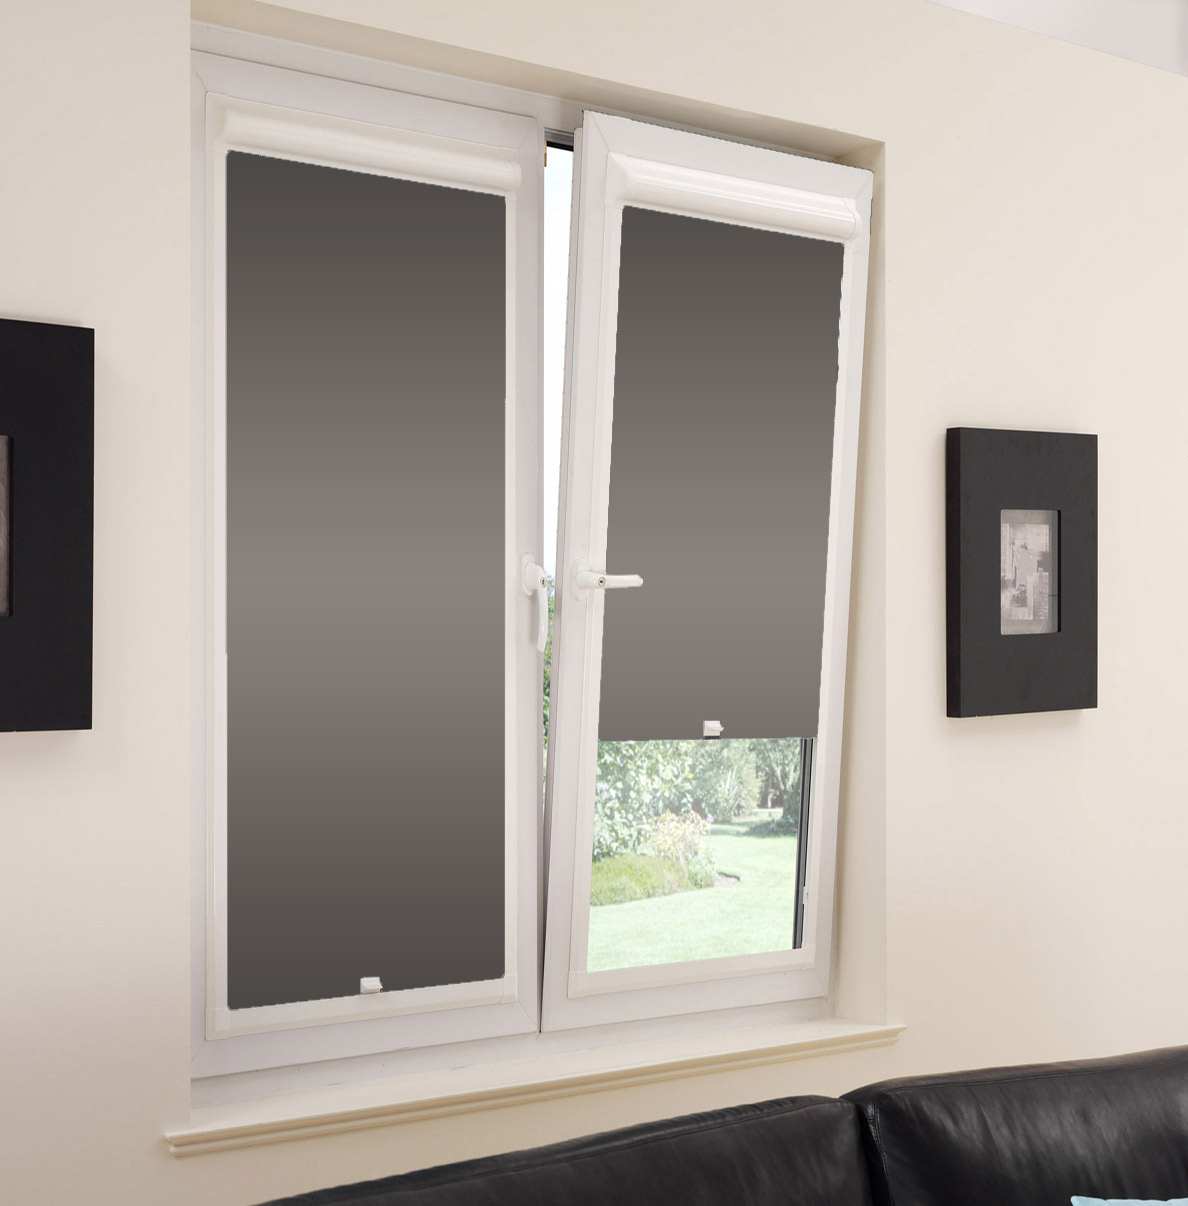 perfect fit roller blinds made to measure from direct blinds. Black Bedroom Furniture Sets. Home Design Ideas